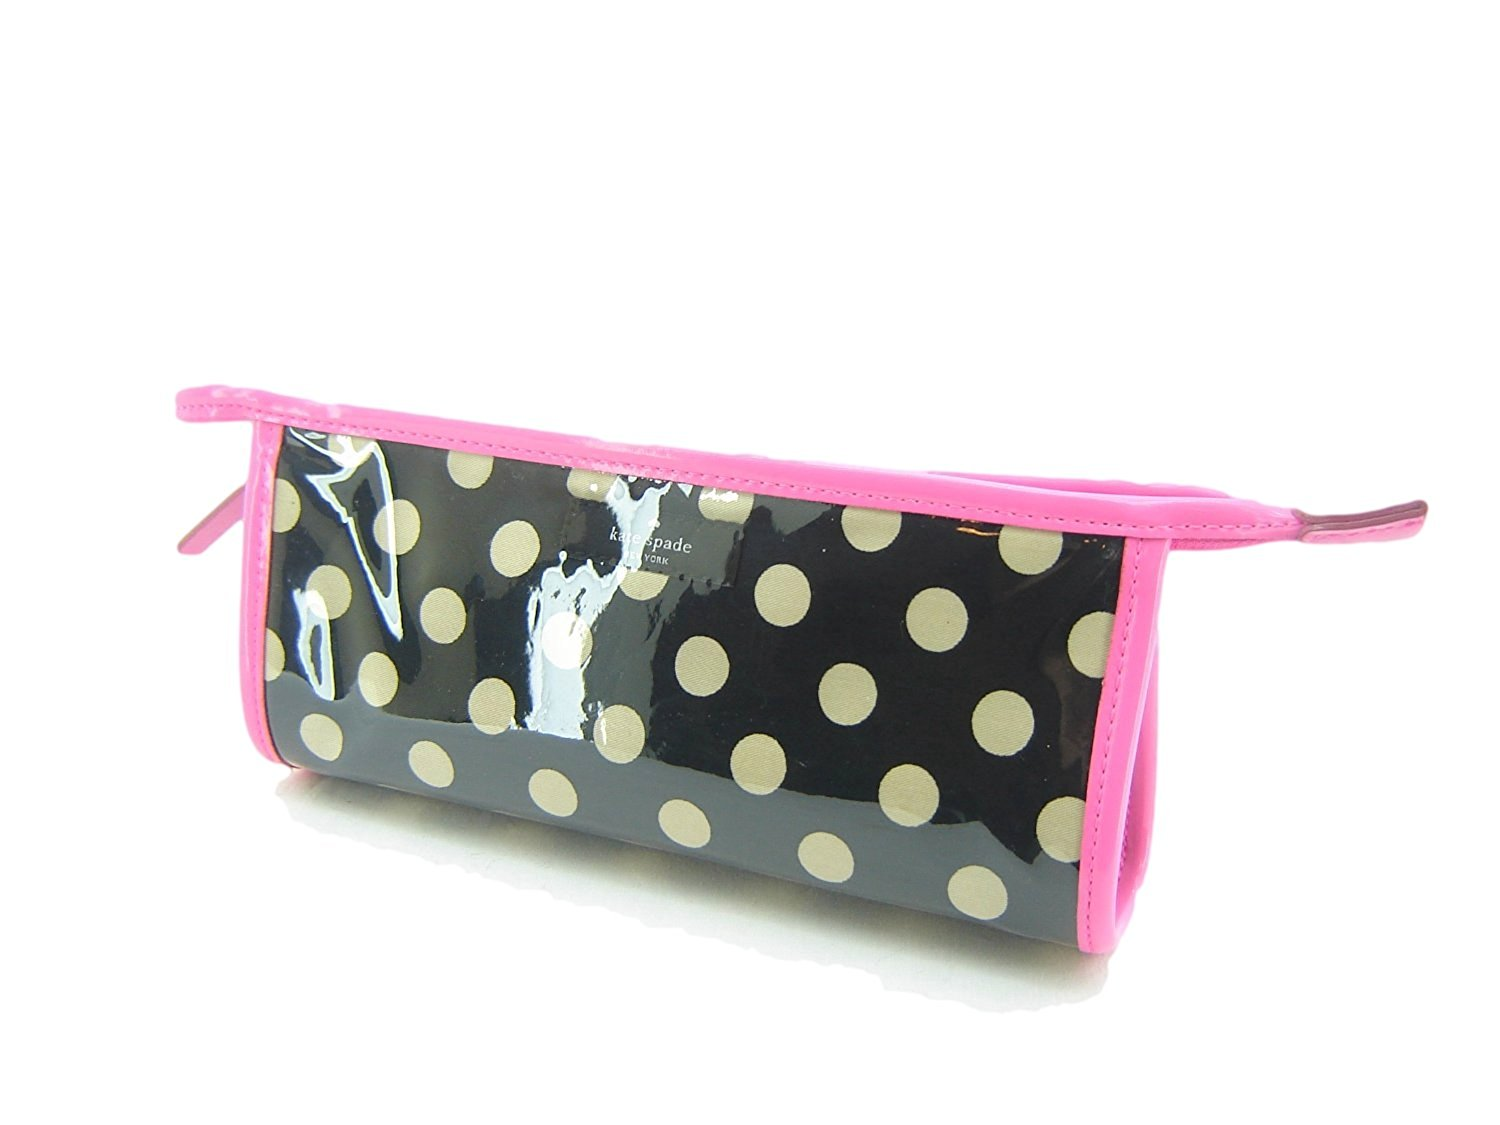 Kate Spade East West Heddy Rose Avenue Black Bdot Small Cosmetic Bag WLRU1261